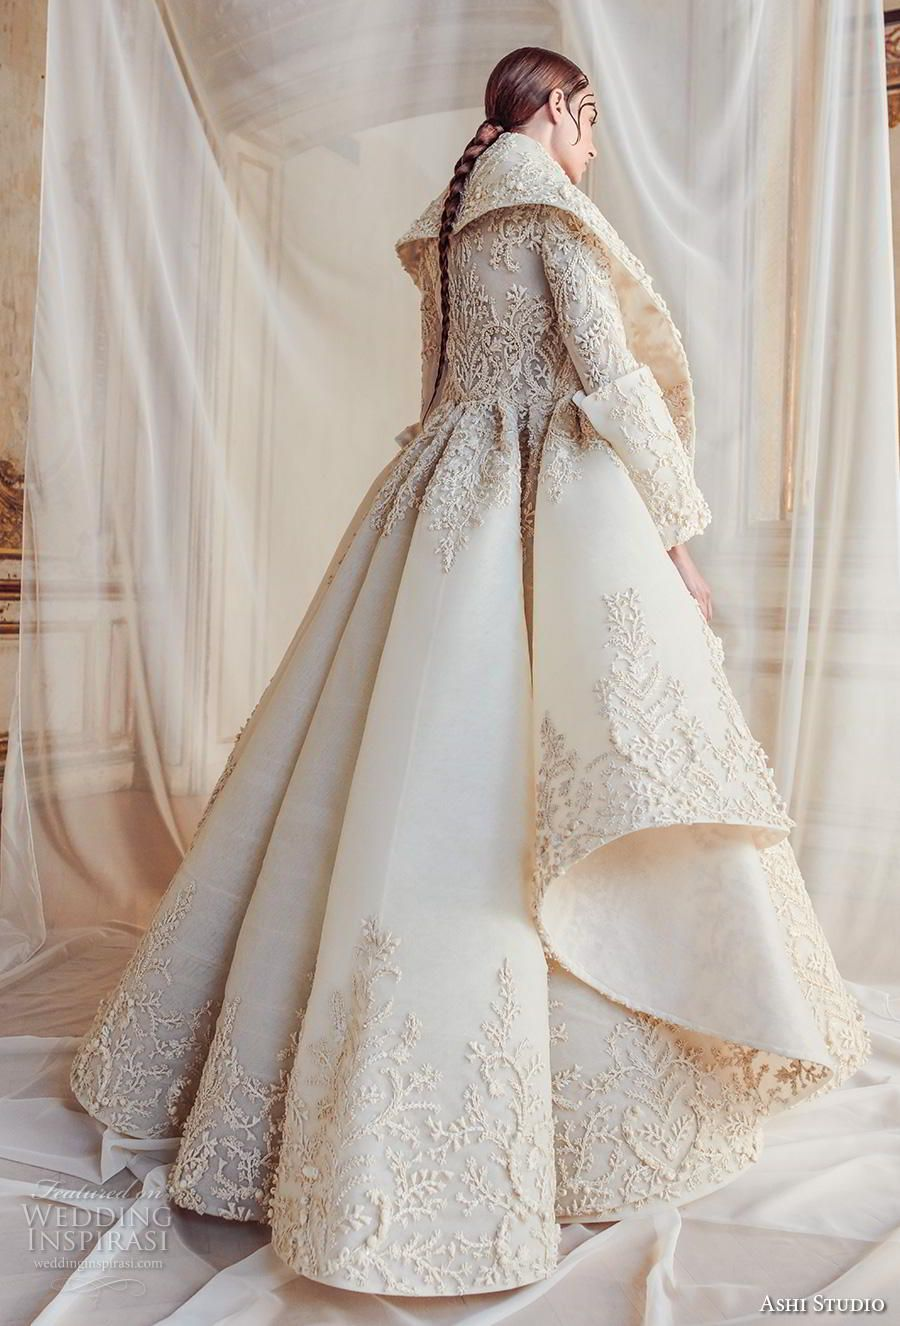 Ashi studio fallwinter couture collection in